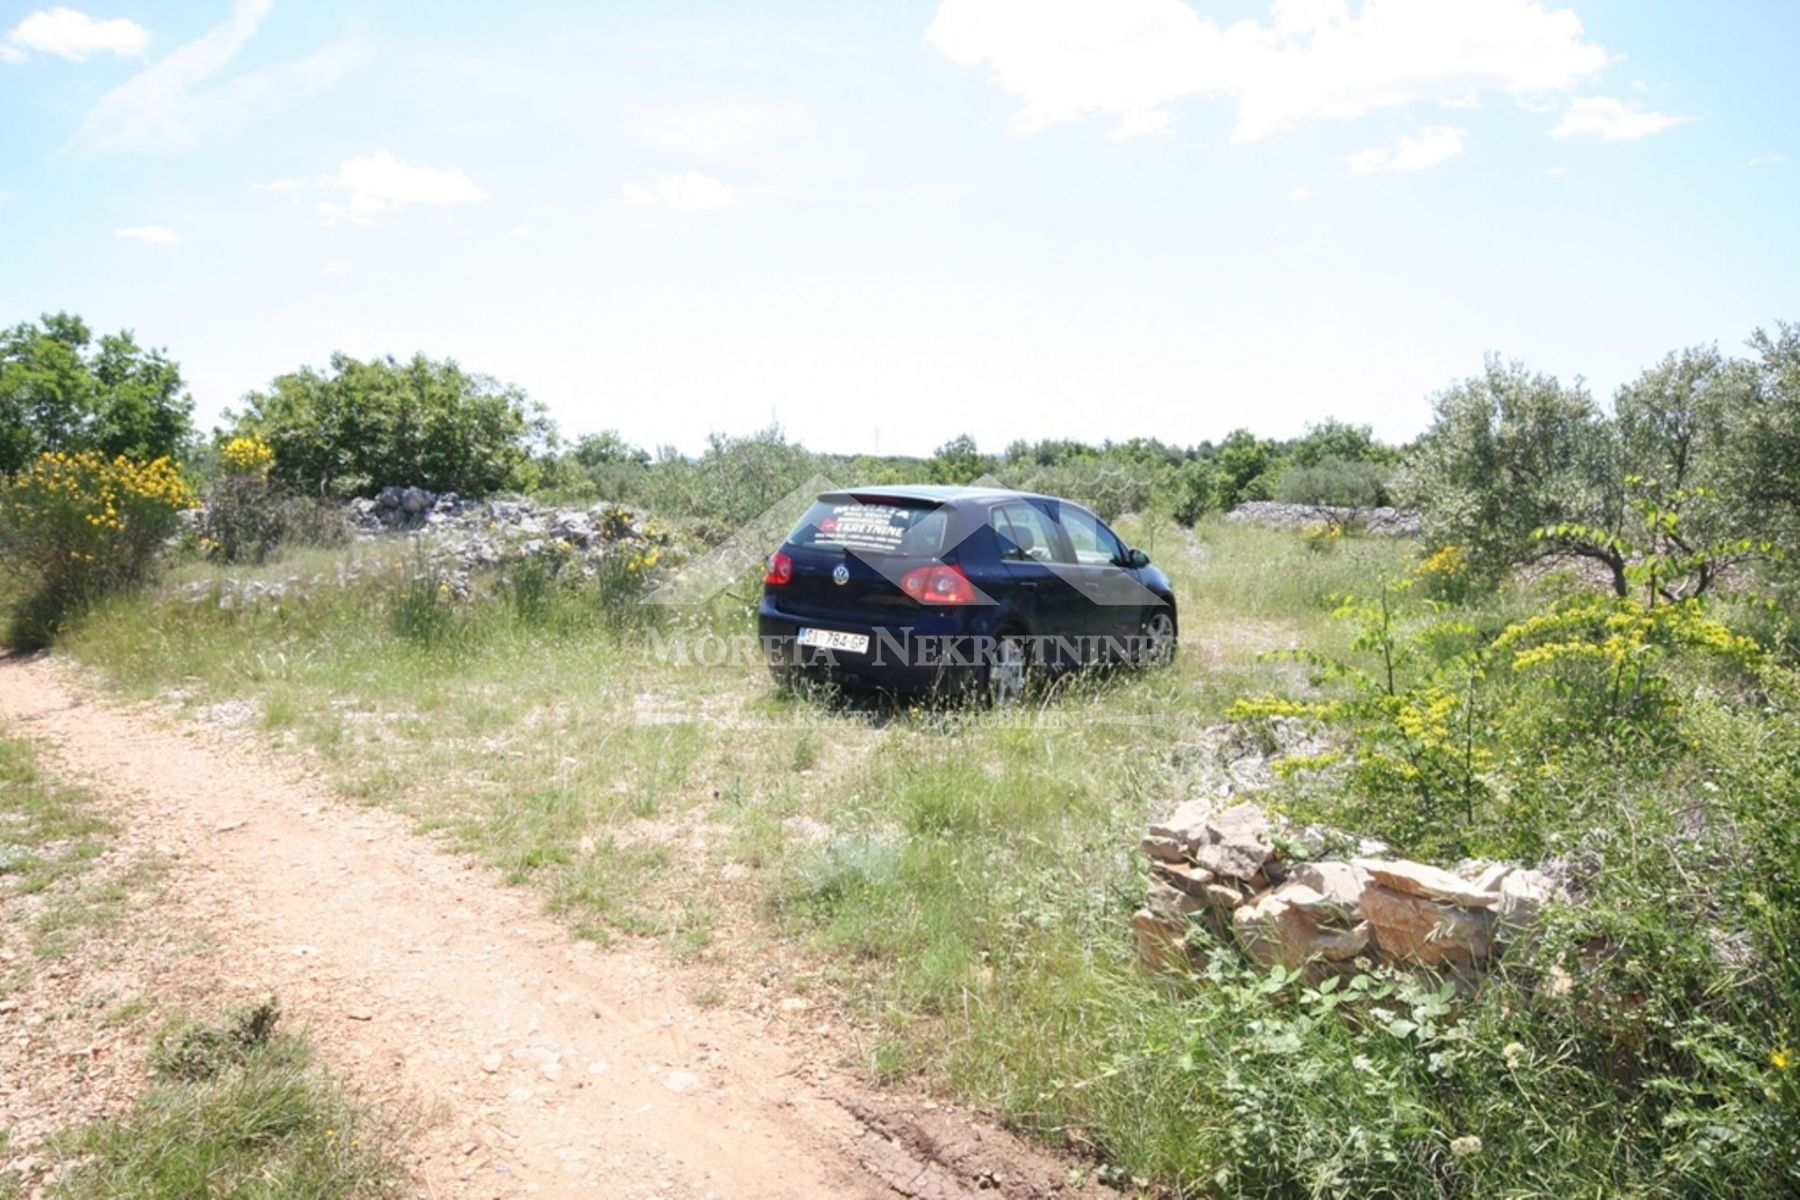 Vodice-Zagreb, compensation agricultural land suitable for building an object up to 30 m / 2